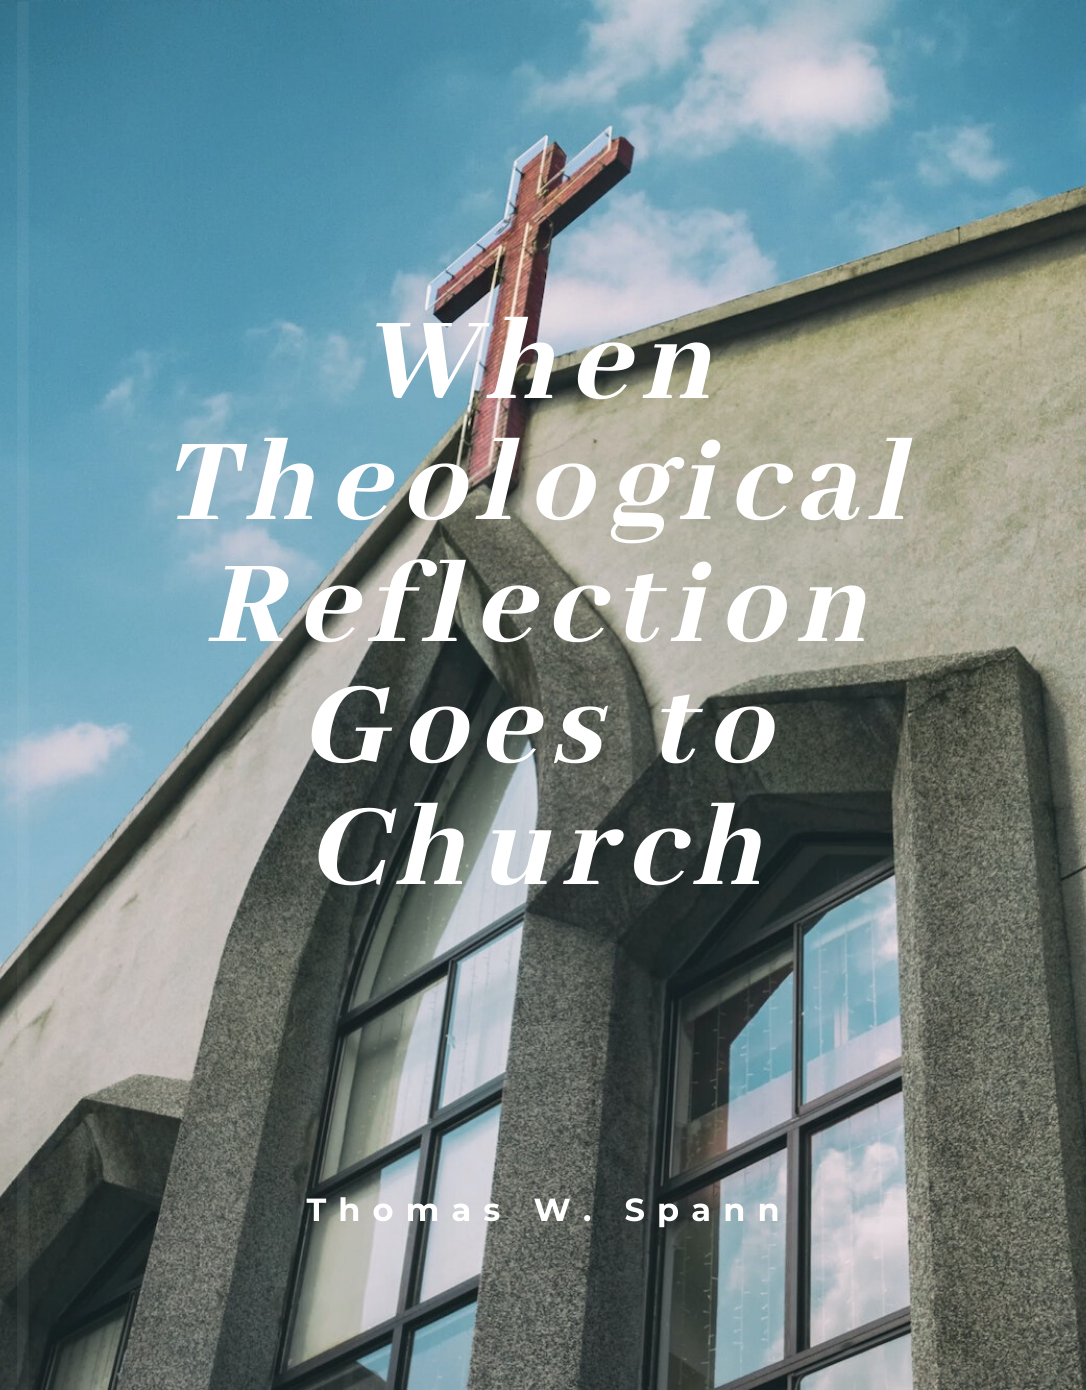 When Theological Reflection Goes to Church by Thomas Spann - Digital